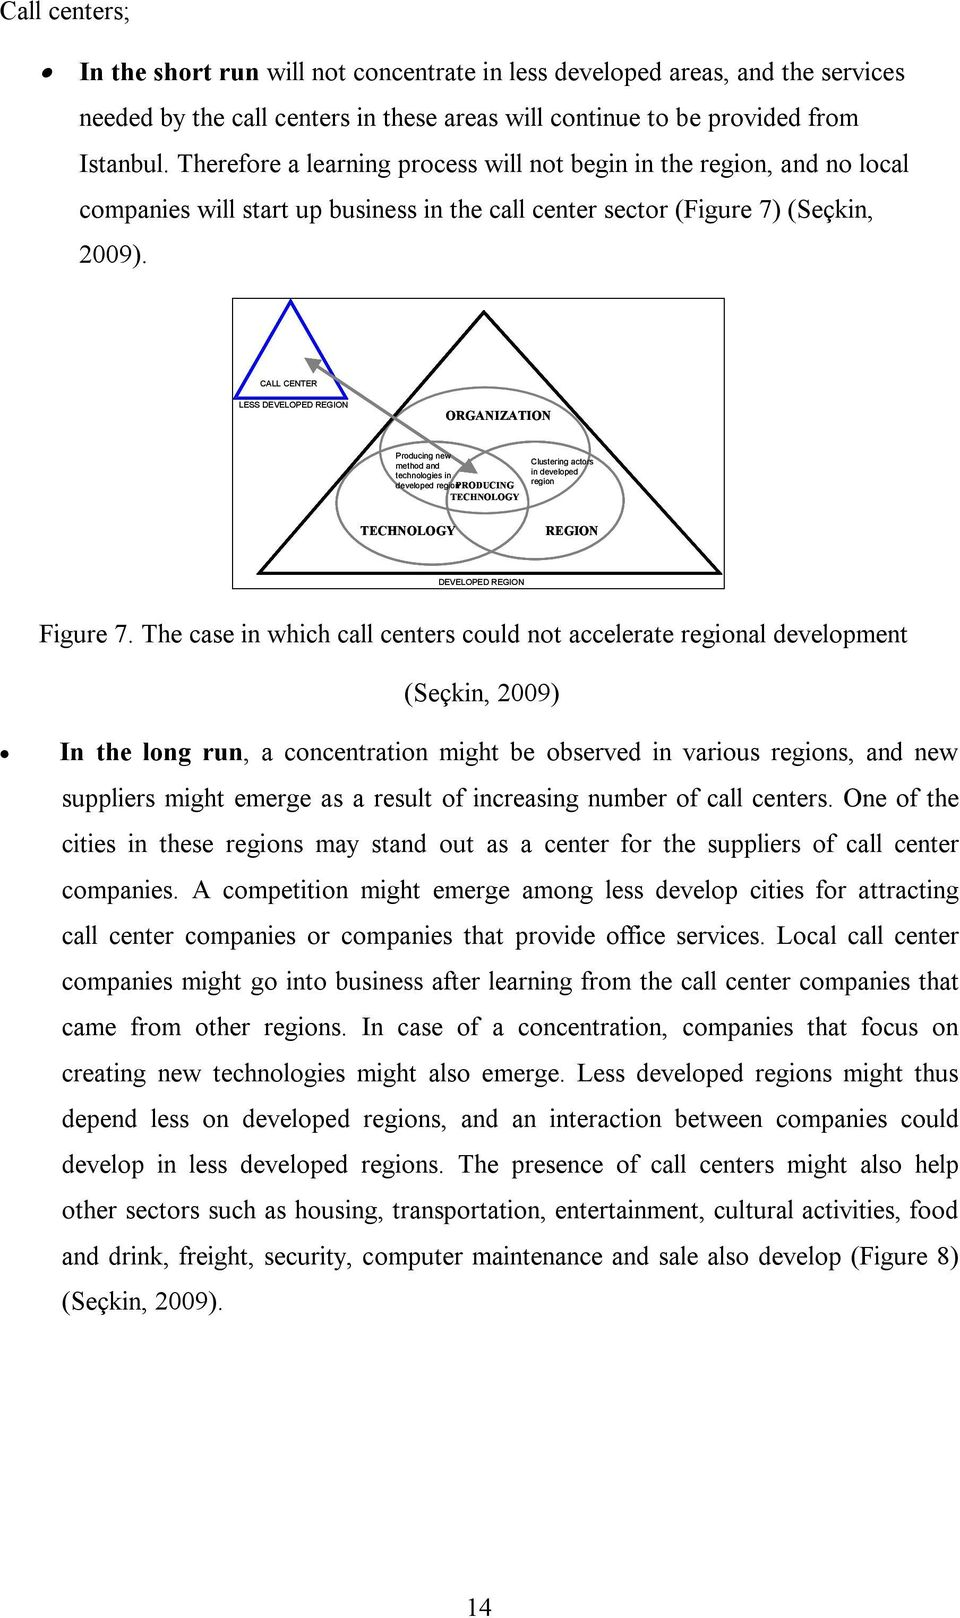 CALL CENTER LESS DEVELOPED REGION ORGANIZATION Producing new method and technologies in developed region PRODUCING TECHNOLOGY Clustering actors in developed region TECHNOLOGY REGION DEVELOPED REGION